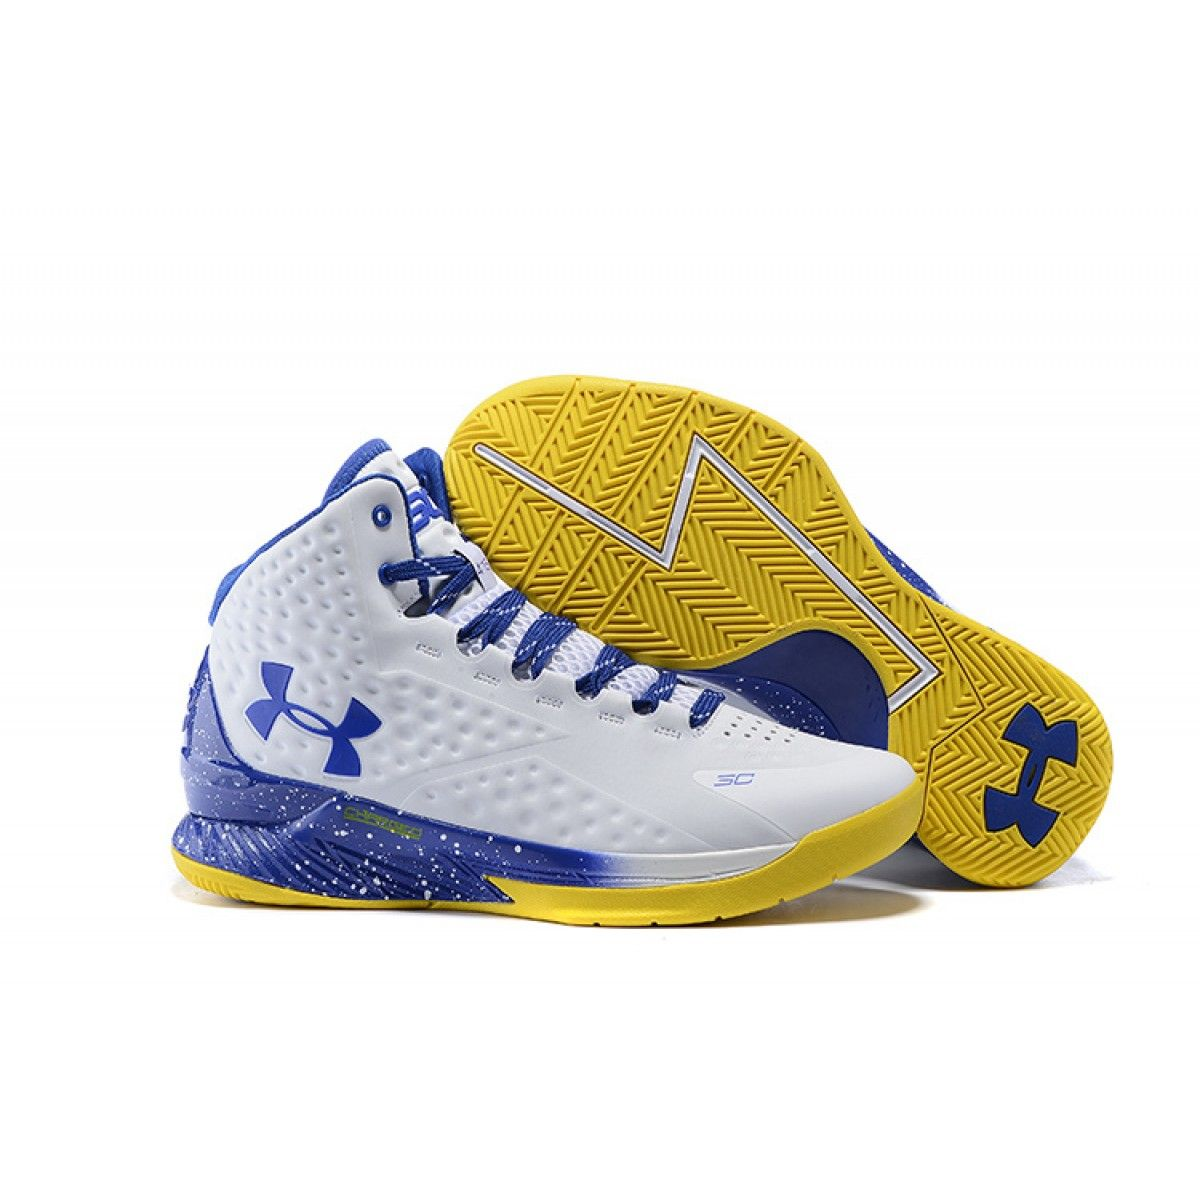 low cost 08a5a c72cd Under Armour Curry One Playoff Basketball Shoes Blue White